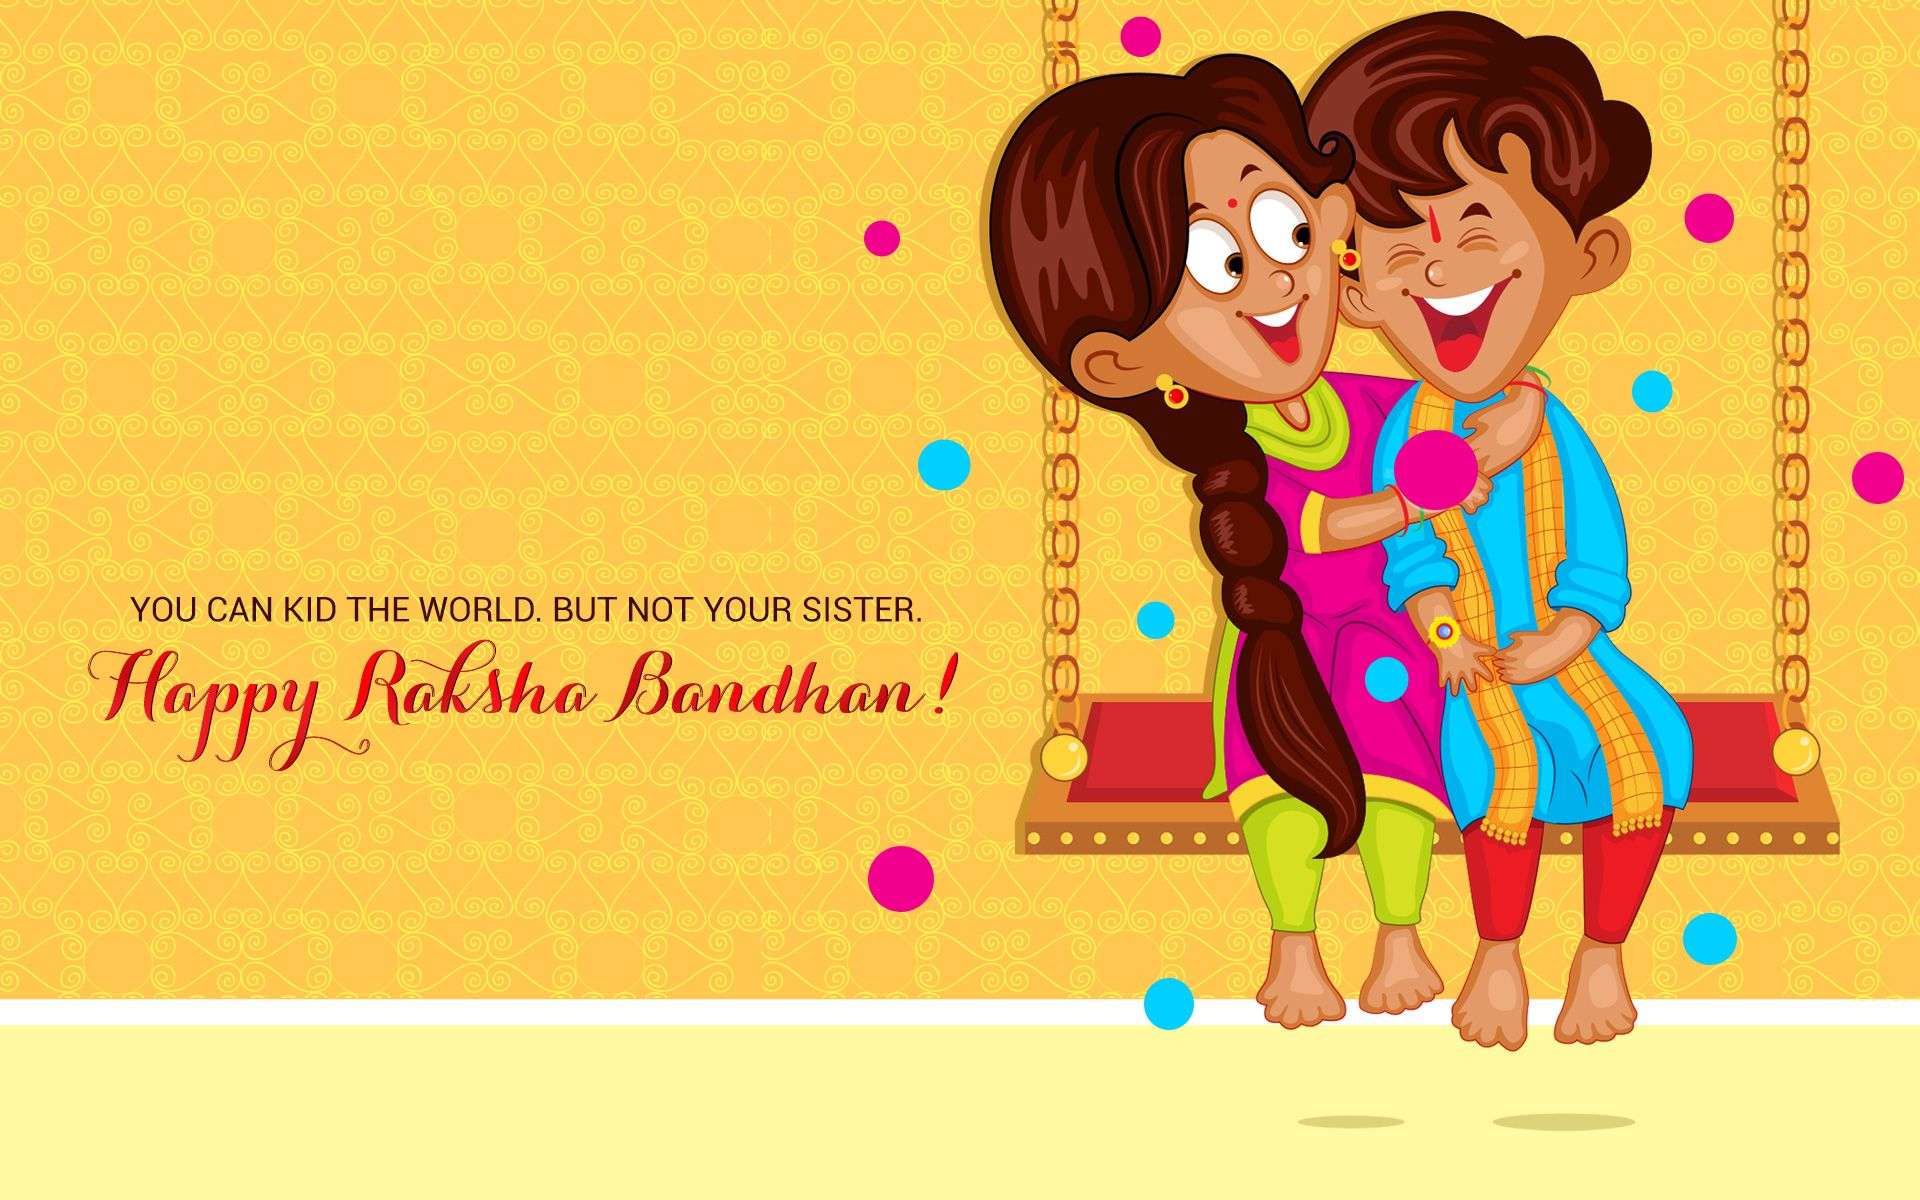 Love Wallpapers For Brother : Rakshabandhan Brother sister HD Wallpaper Happy Raksha Bandhan , Rakhi, Brother. Sister, Love ...